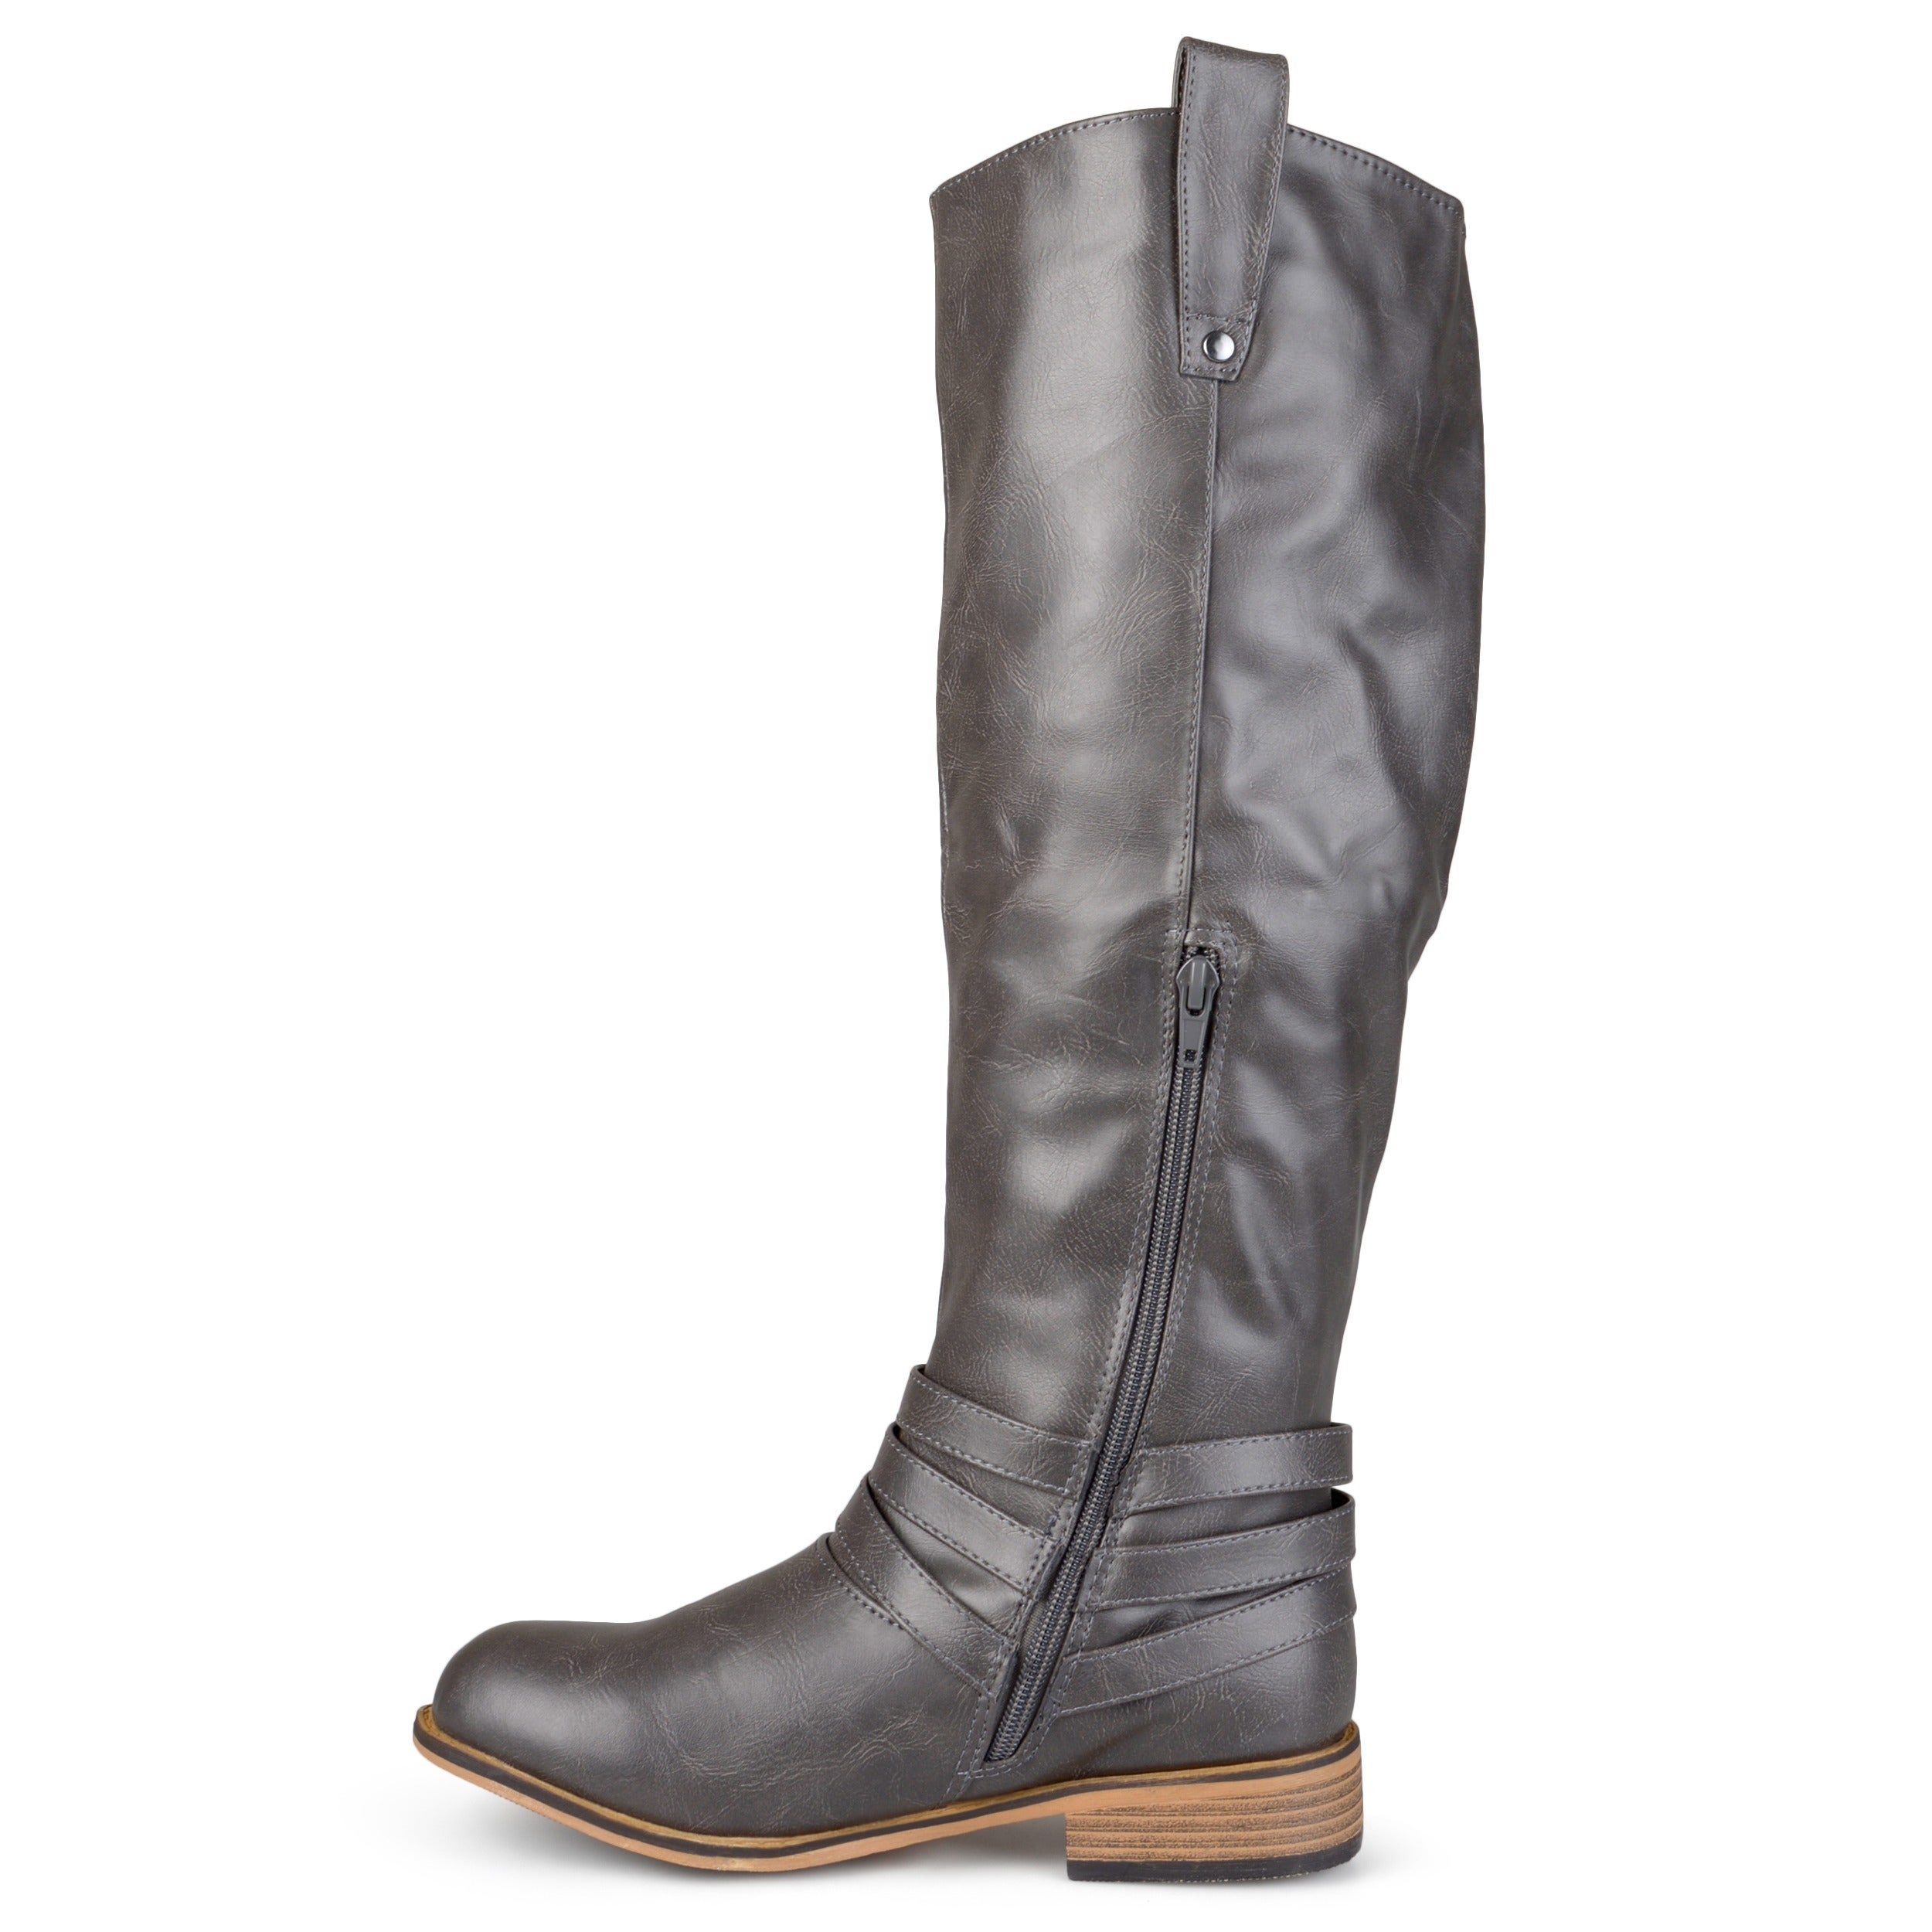 Journee Collection Women's 'Walla' Regular and Wide-calf Ankle-strap  Knee-high Riding Boot - Free Shipping Today - Overstock.com - 15653317